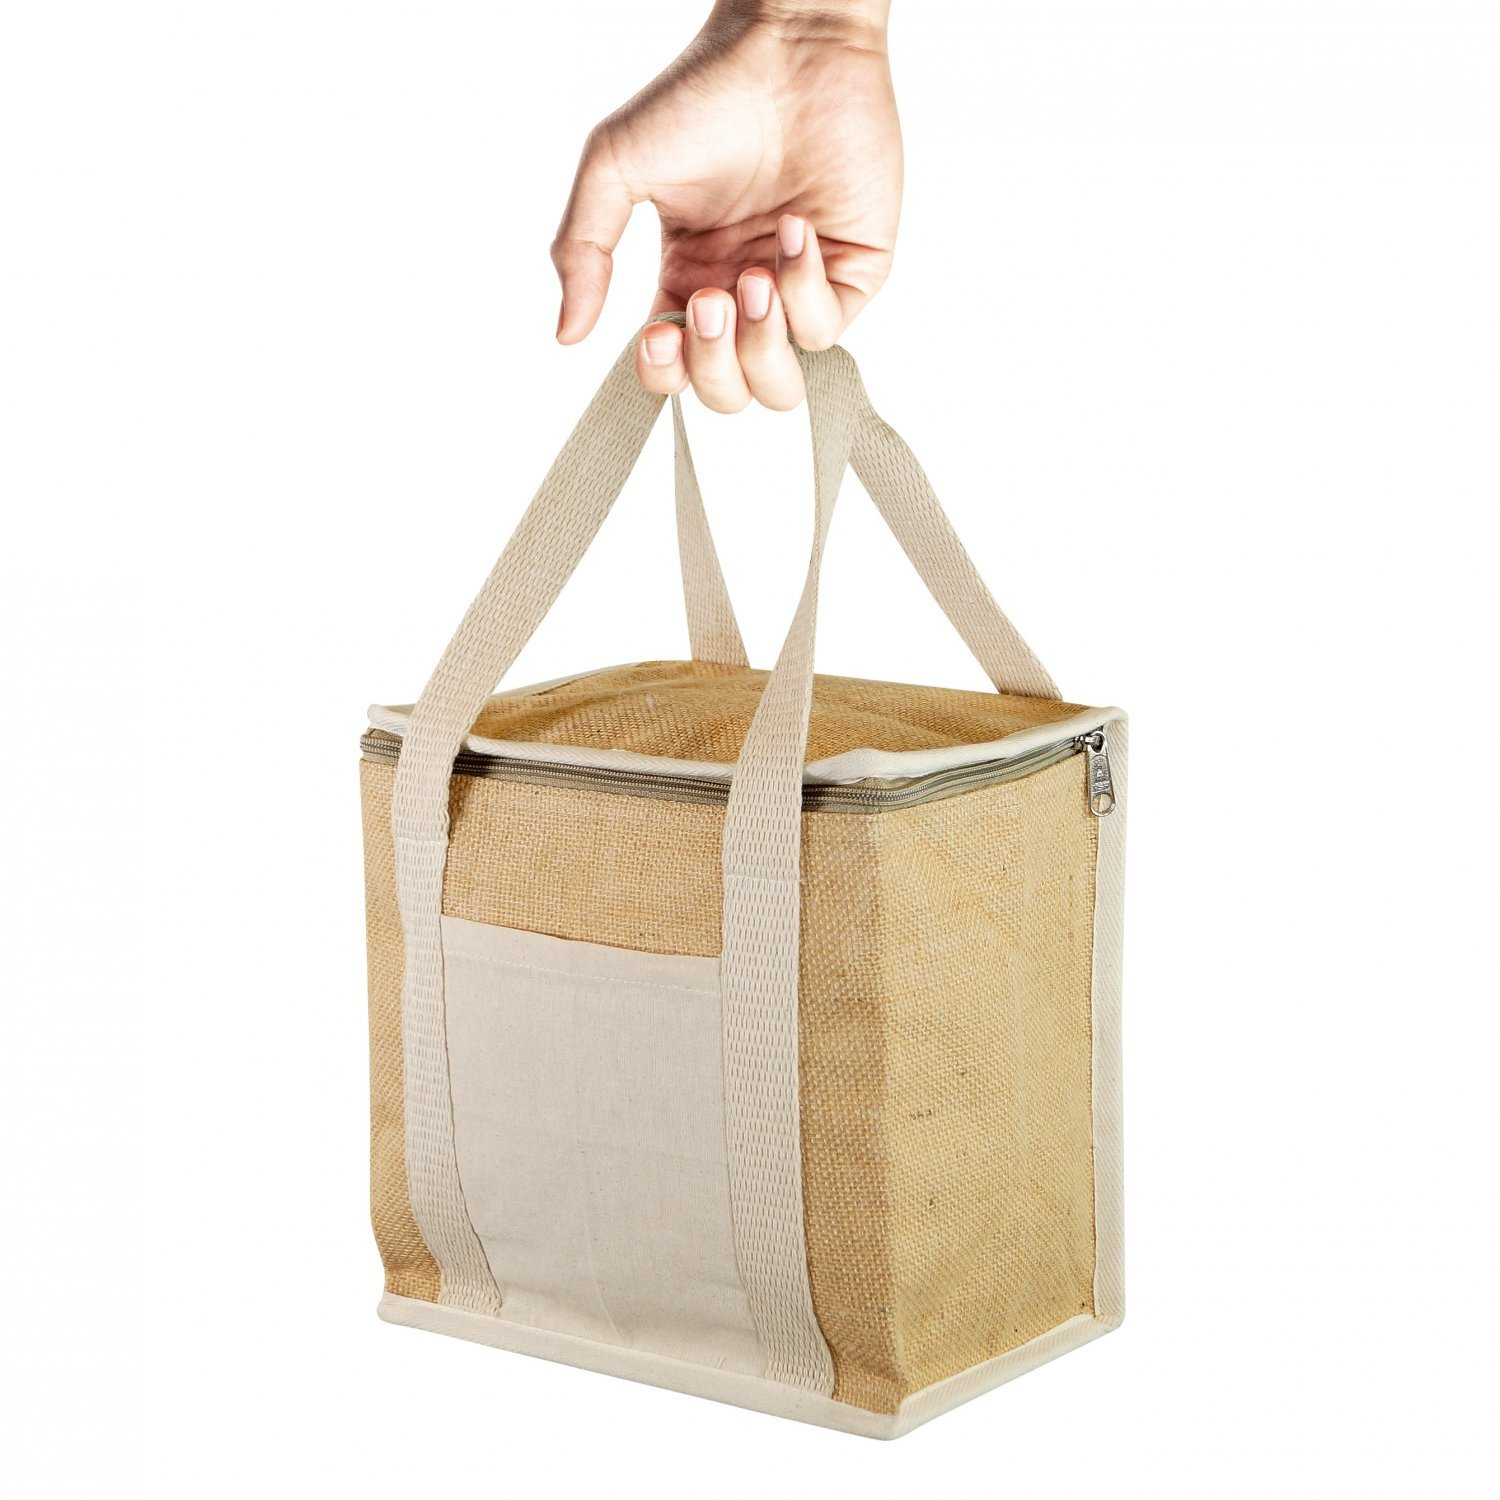 Lunch bag - 4-1563-1